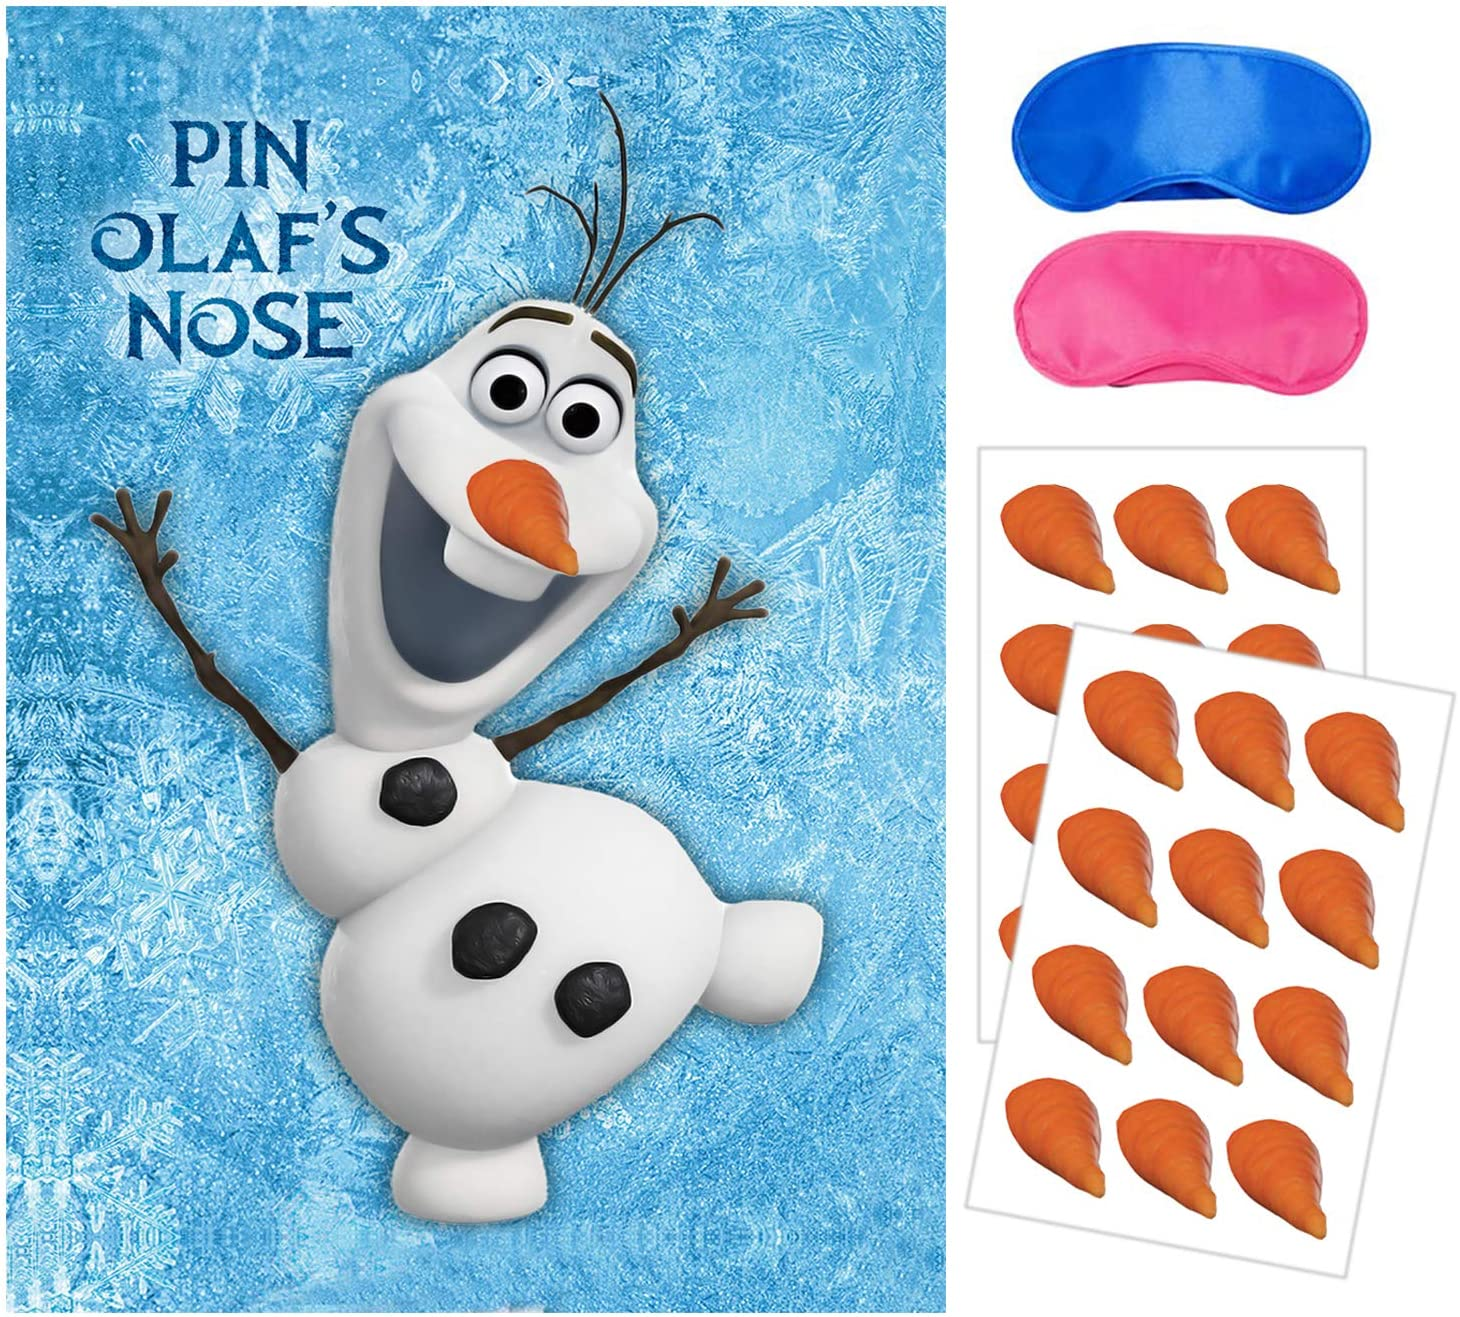 Eazyco Froze Party Supplies, Pin The Nose on Olaf, Froze Party Games, Large Poster 24PCS Nose Stickers for Frozen Theme Birthday Baby Shower Party Favors Decorations